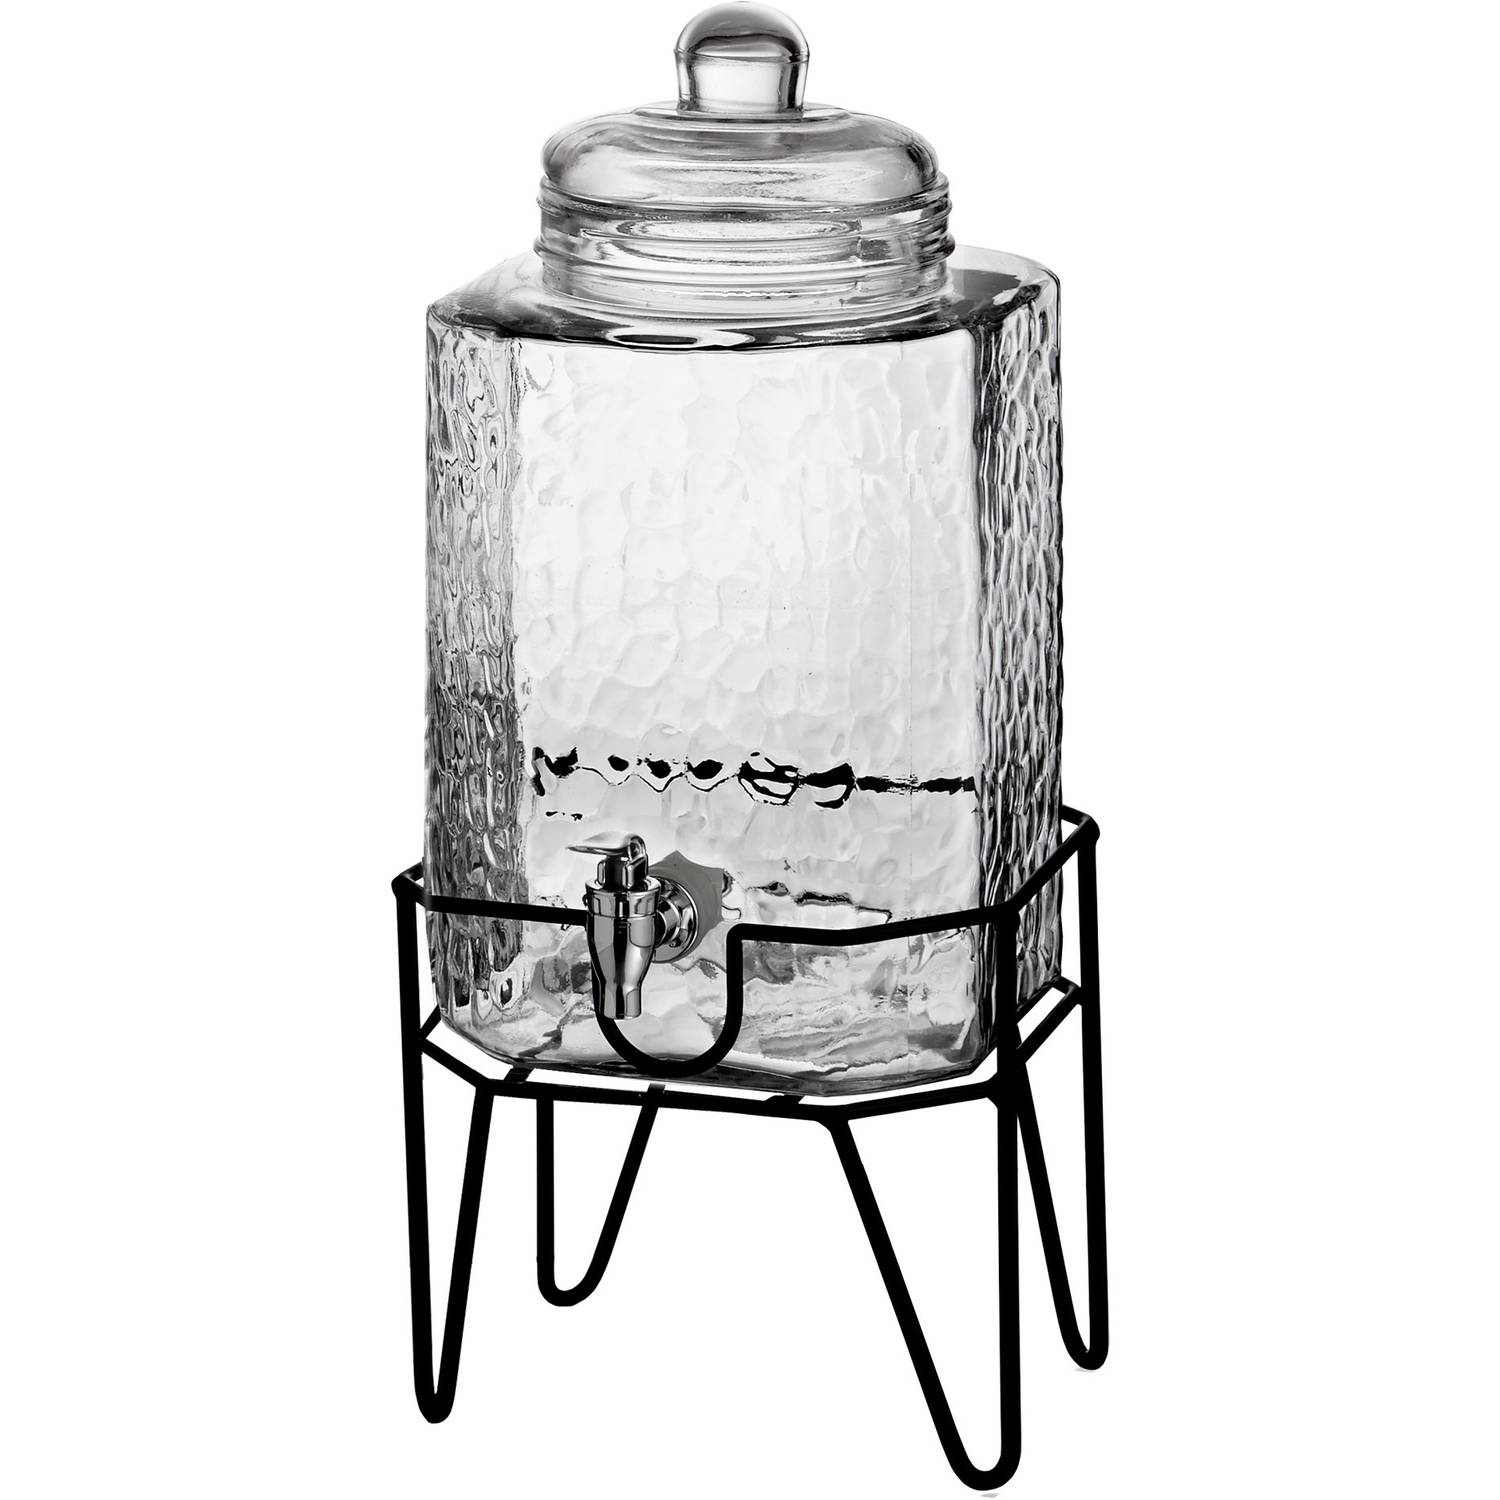 Hamburg Beverage Dispenser on Stand, 1.5 gal